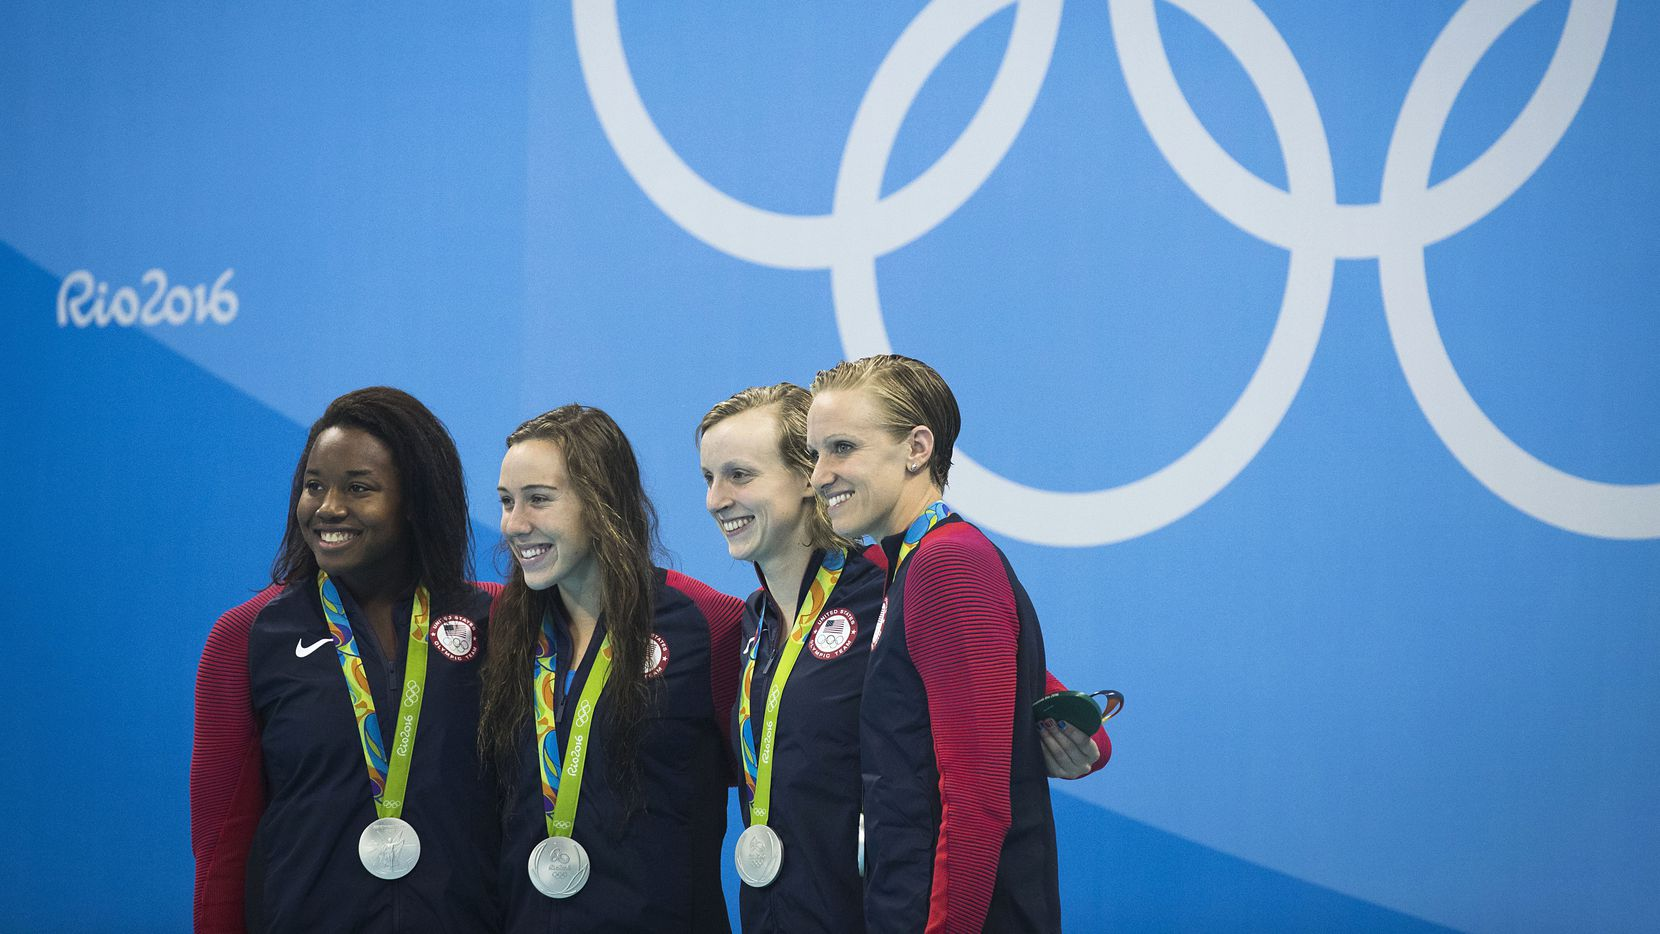 Team USA, from left, Simone Manuel, Abbey Weitzeil, Katie Ledecky and Dana Vollmer pose with their medals after taking silver in the women's 400x100 freestyle relay final at the Rio 2016 Olympic Games on Saturday, Aug. 6, 2016, in Rio de Janeiro.  Australia took the gold. (Smiley N. Pool/The Dallas Morning News)